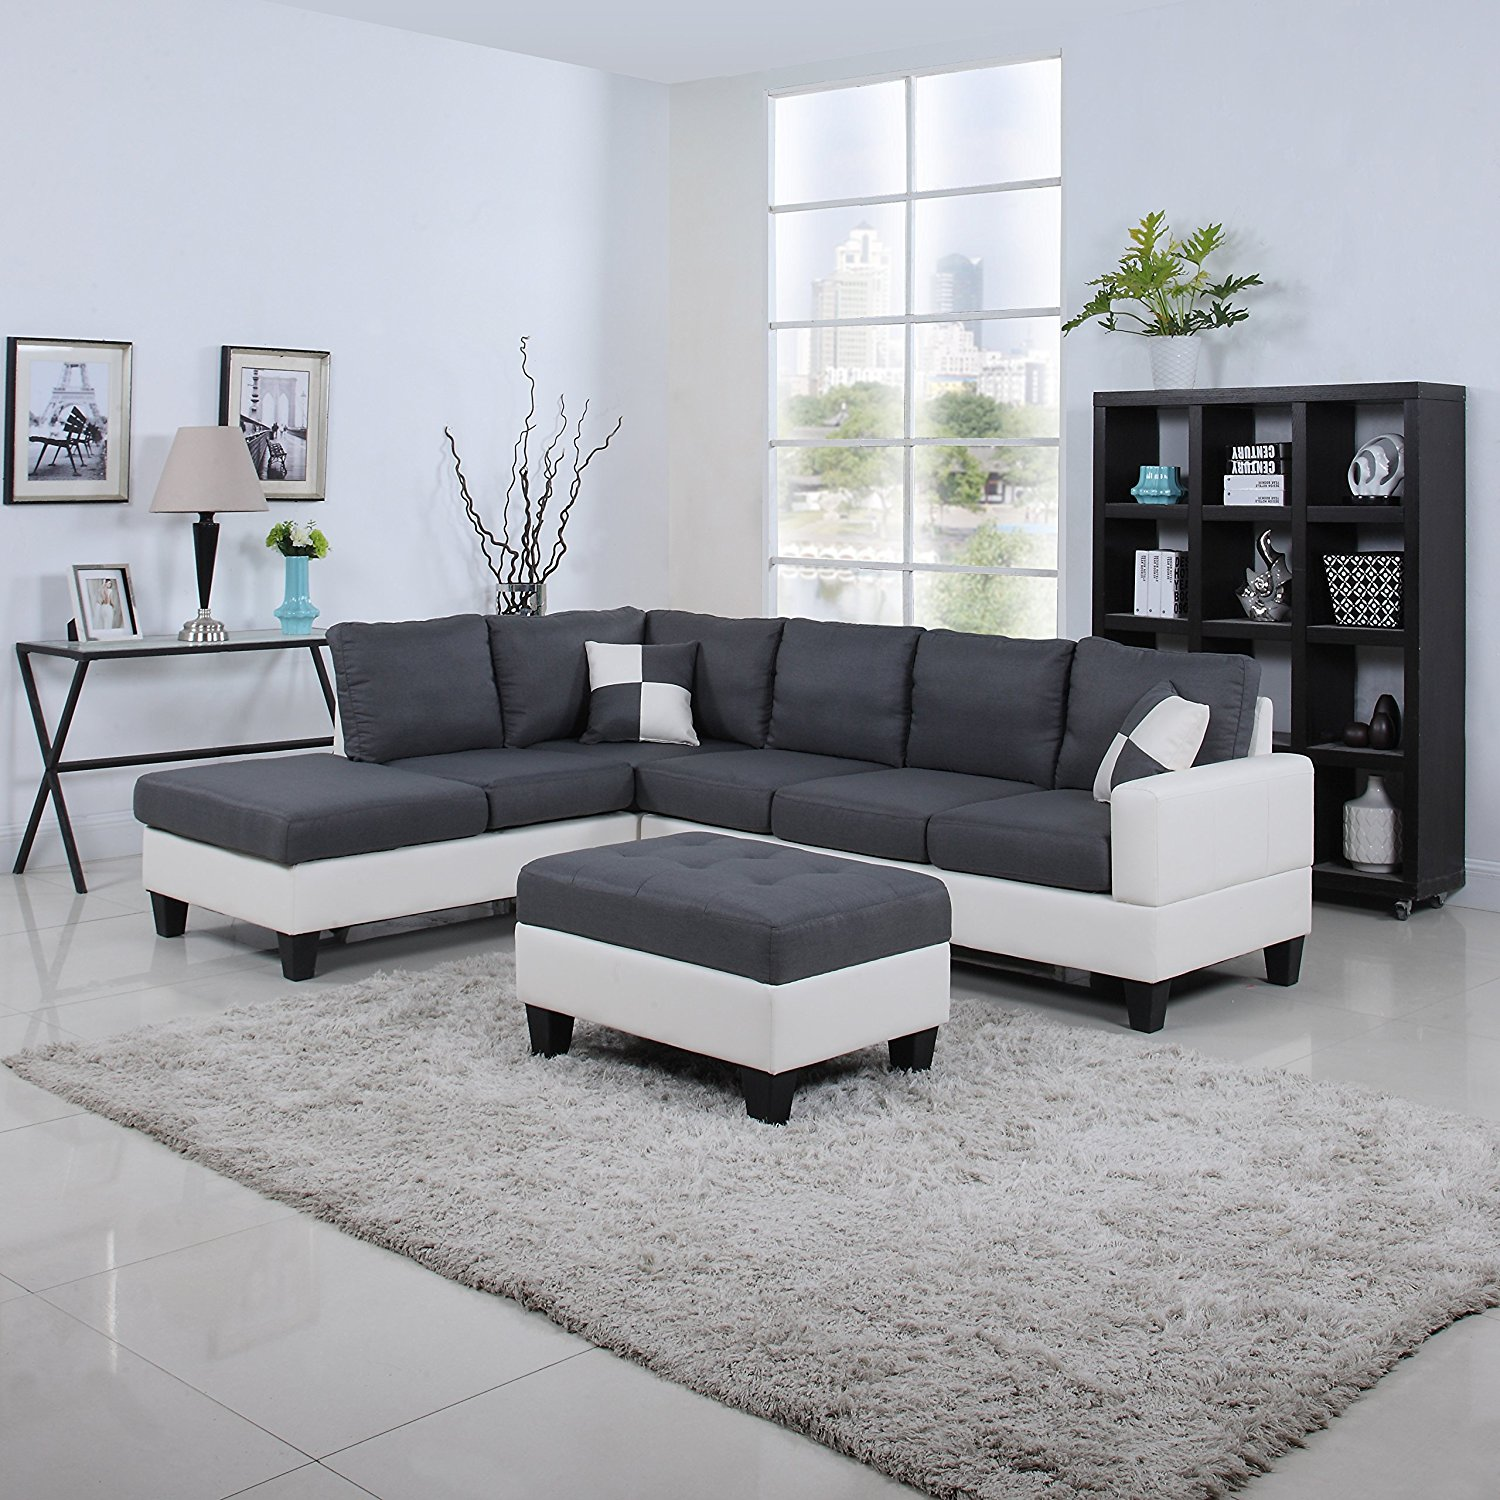 pictures of living rooms with white leather sofas compact sofa chair black and 2 tone room sectional